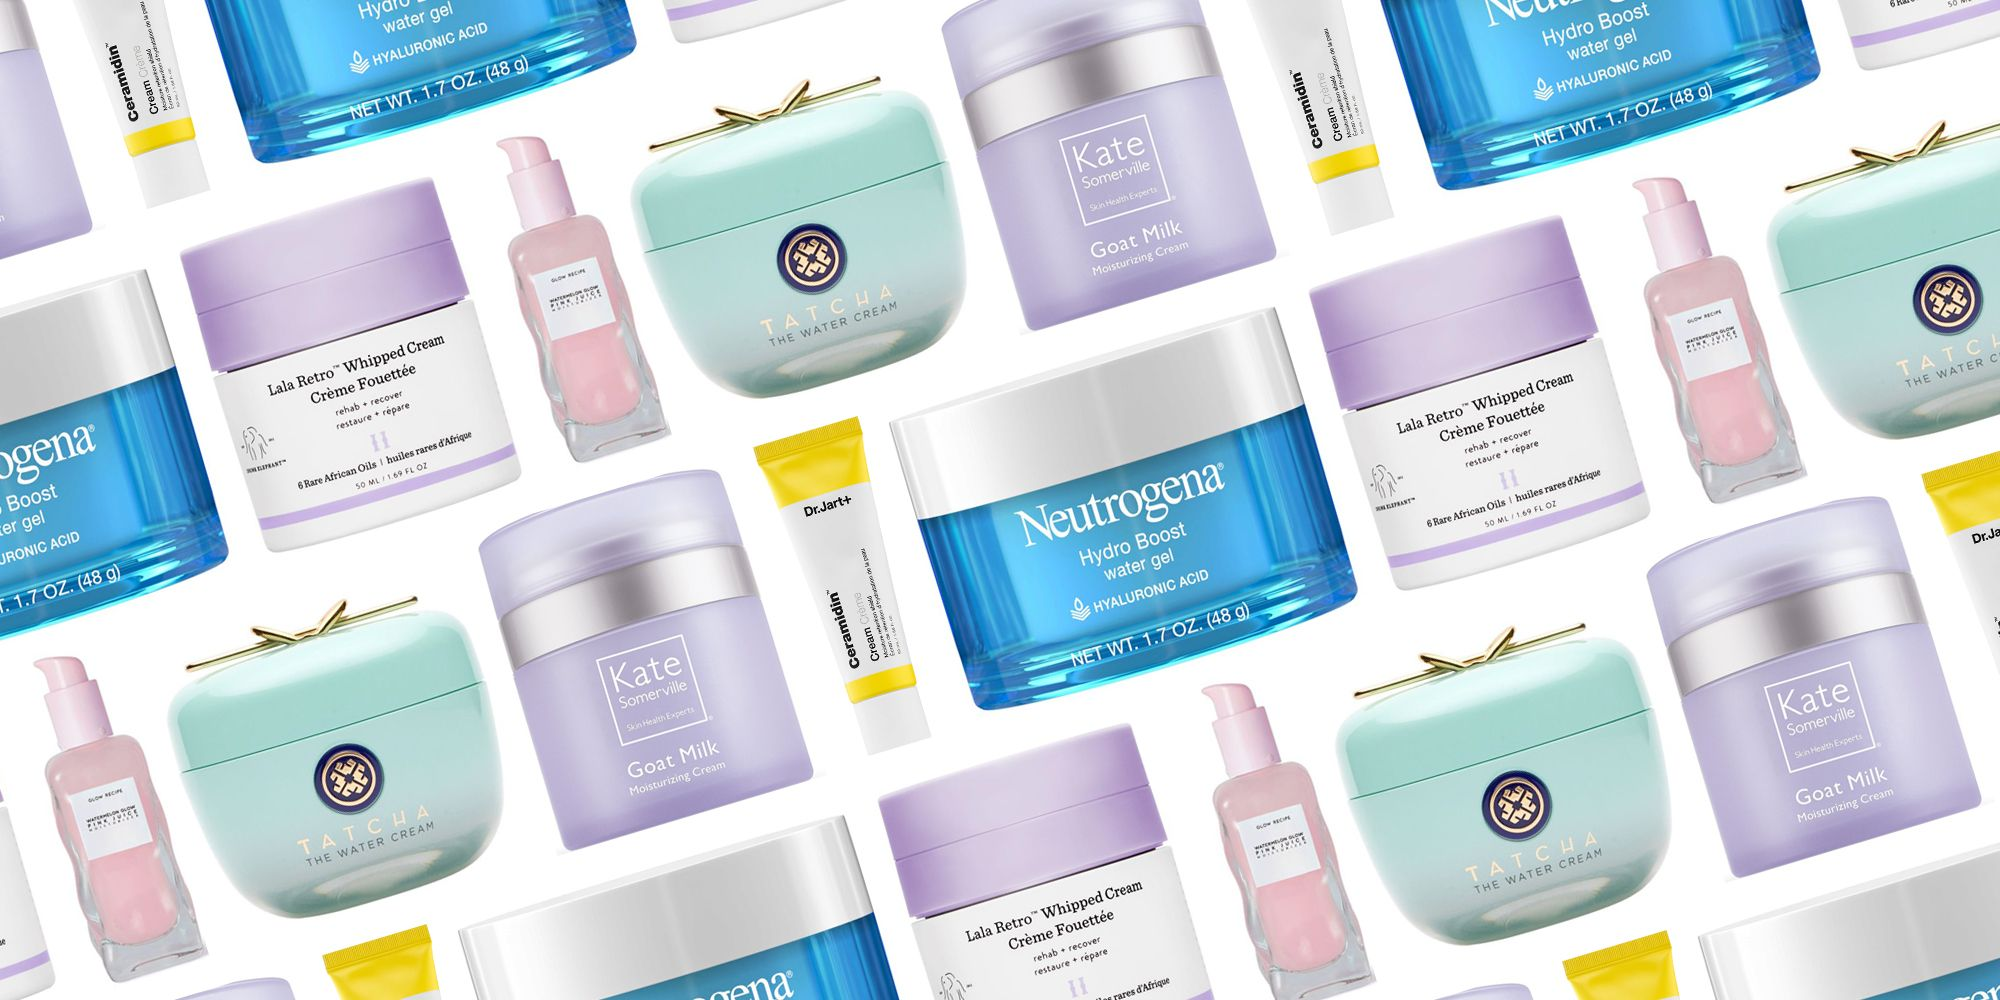 20+ Best Face Moisturizers for Dry Skin 2019 - Face Cream